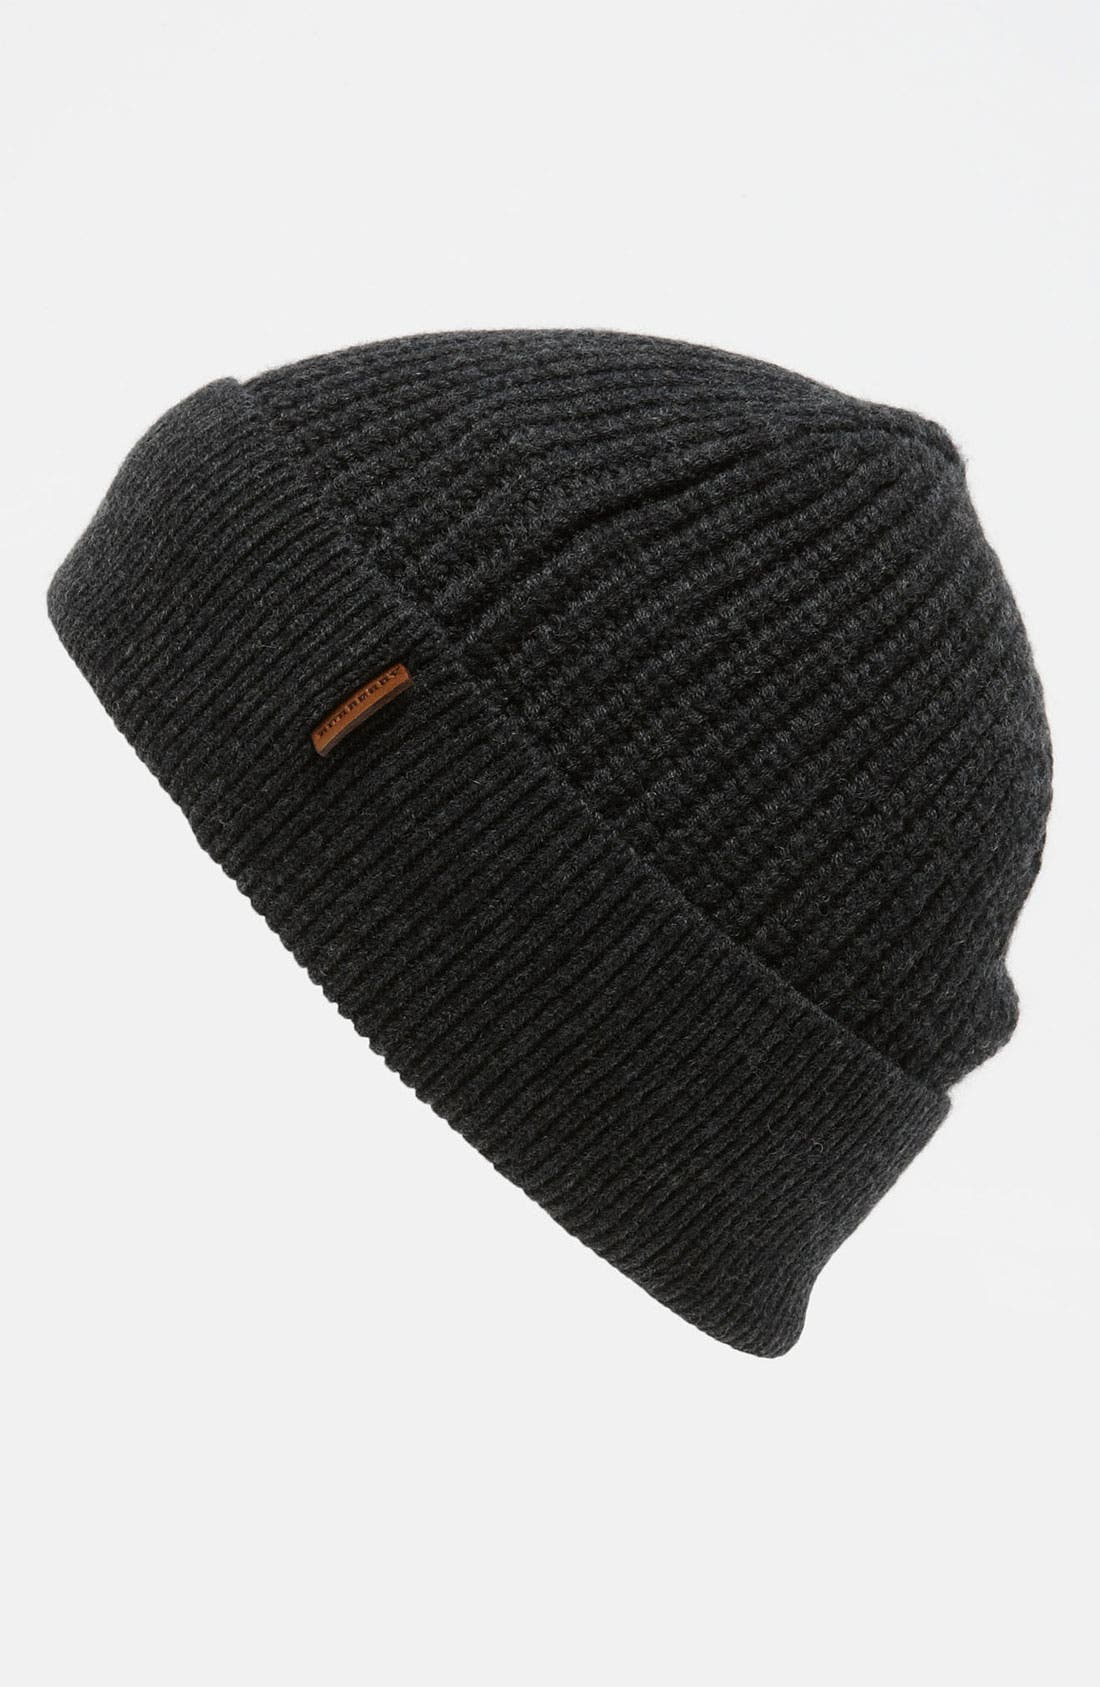 Alternate Image 1 Selected - Burberry 'Fisherman's' Beanie